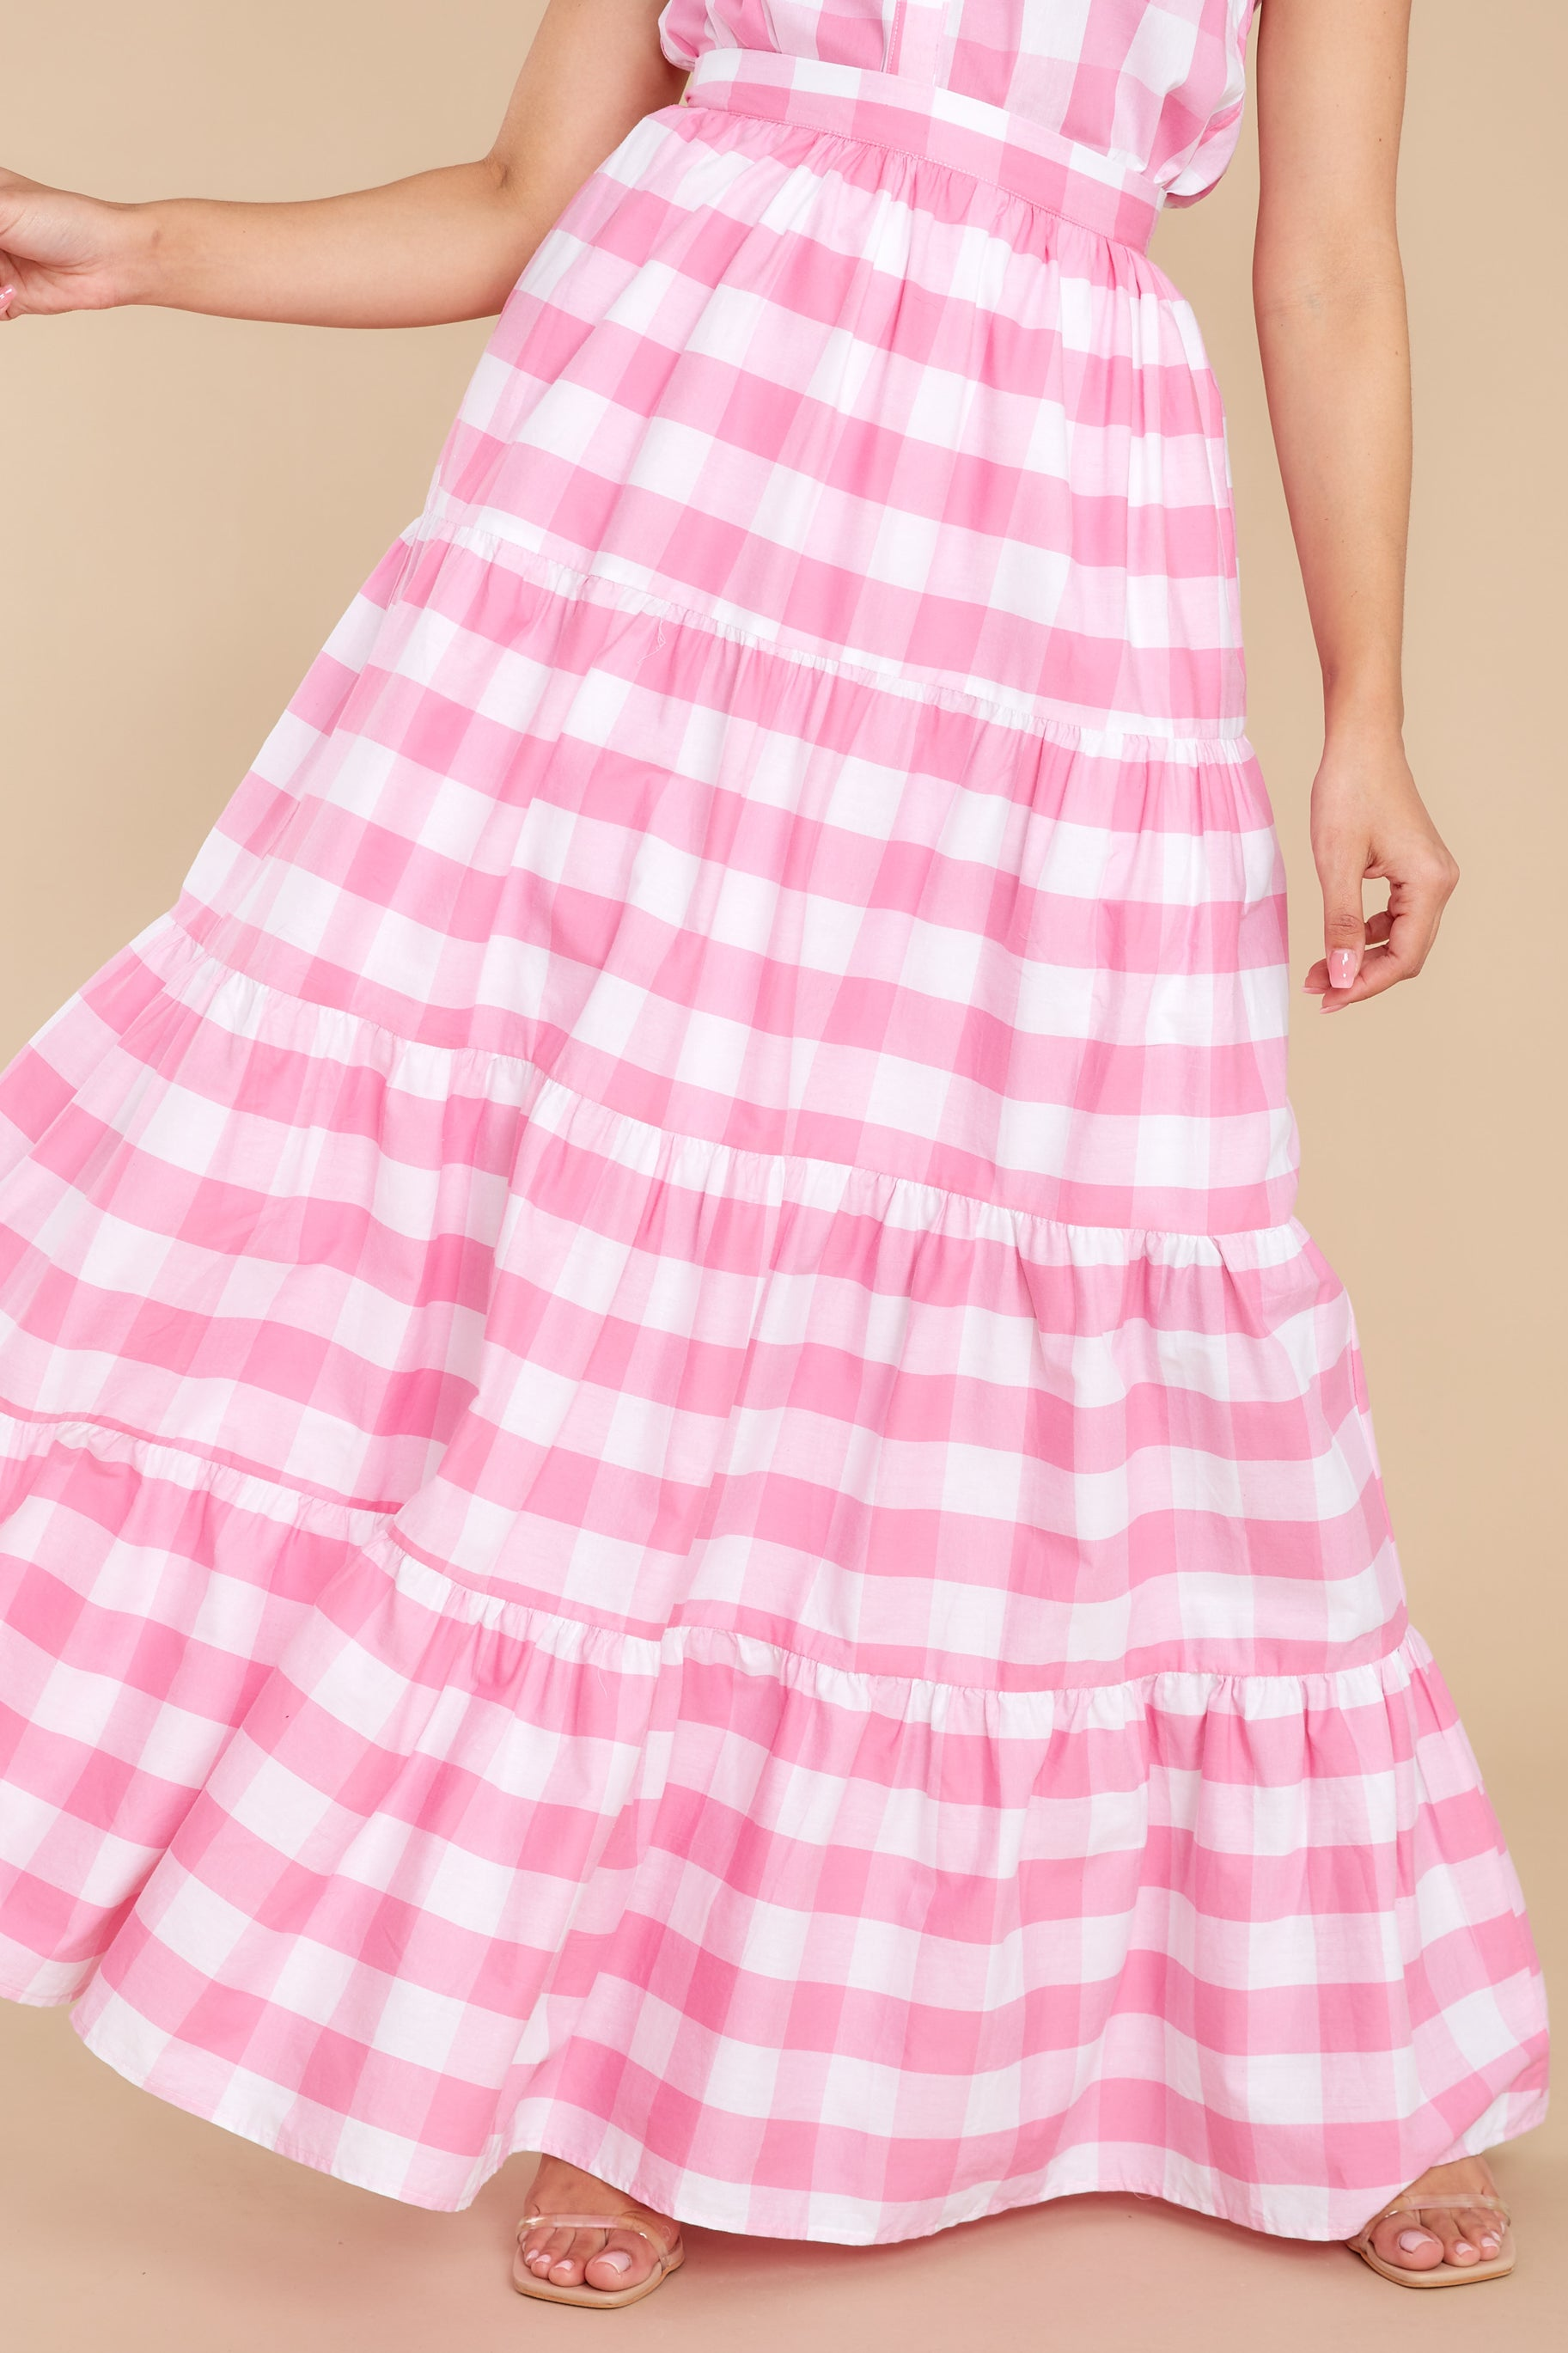 Vintage Skirts | Retro, Pencil, Swing, Boho Aura Too Much To Say Pink Gingham Skirt $48.00 AT vintagedancer.com